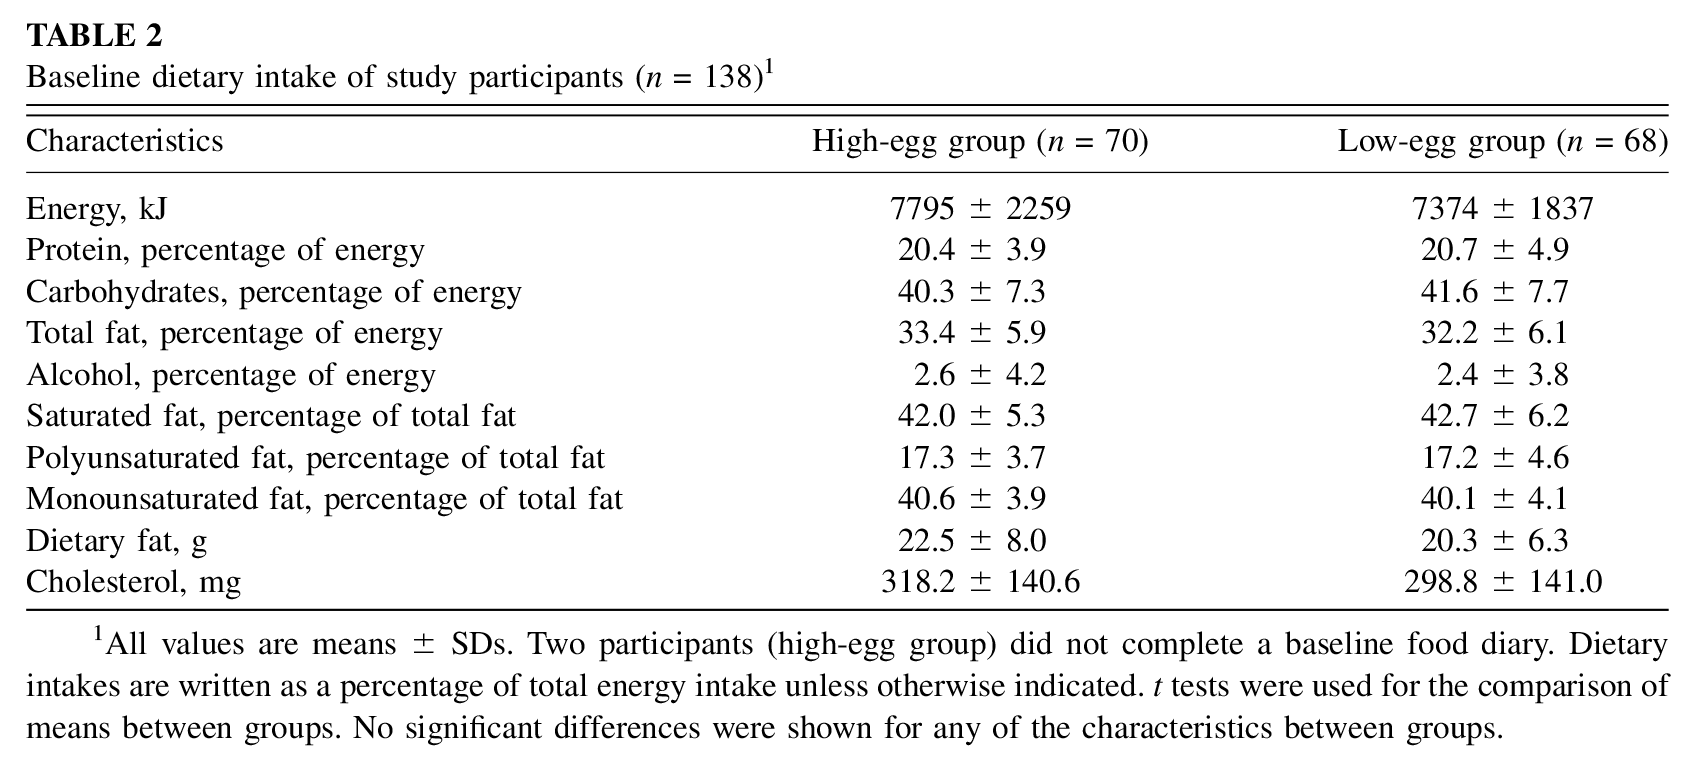 baseline dietary intake of study participants